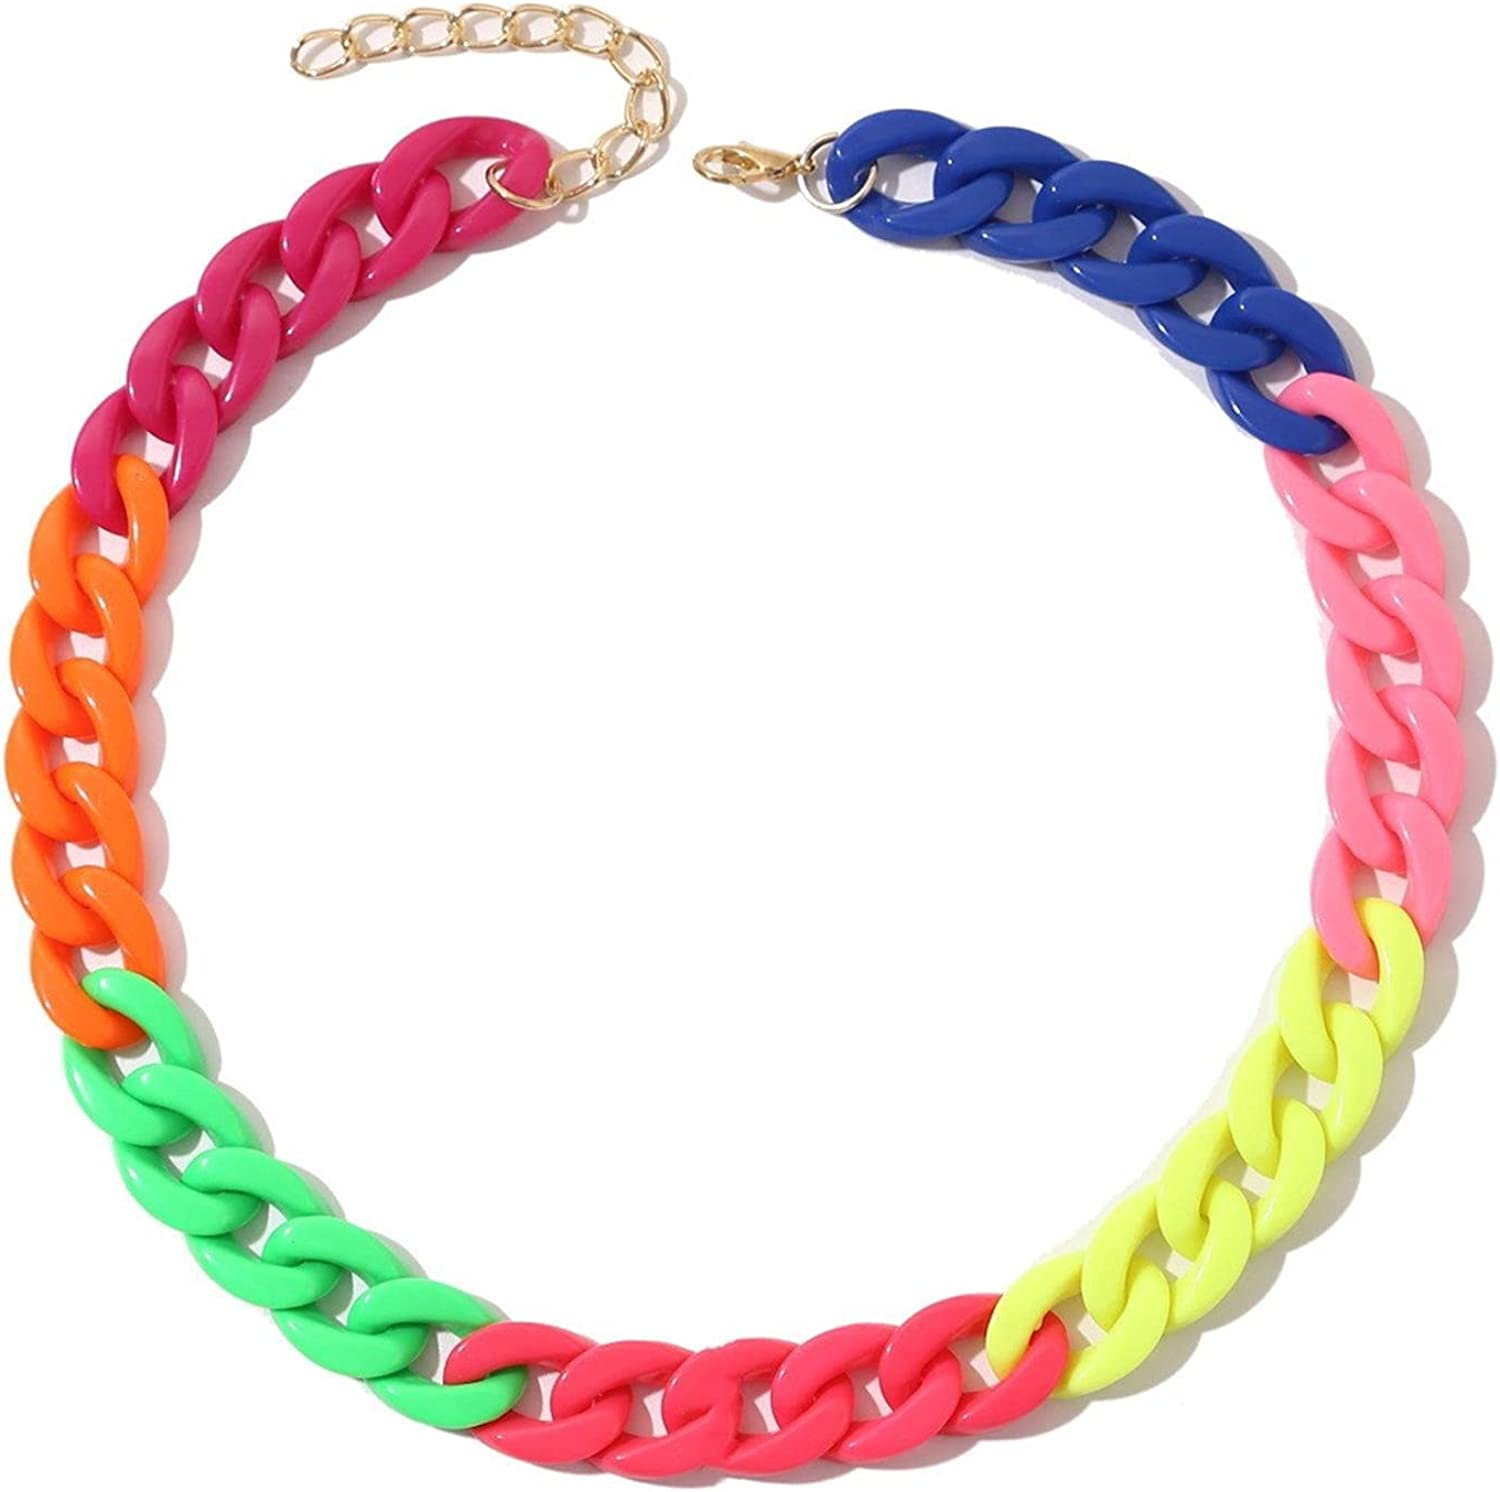 Colorful Acrylic Paperclip Chain Choker Necklace Rainbow Resin Chunky Link Chain Hip Hop Punk Acrylic Cuban Collar Necklace Jewelry for Women Girl